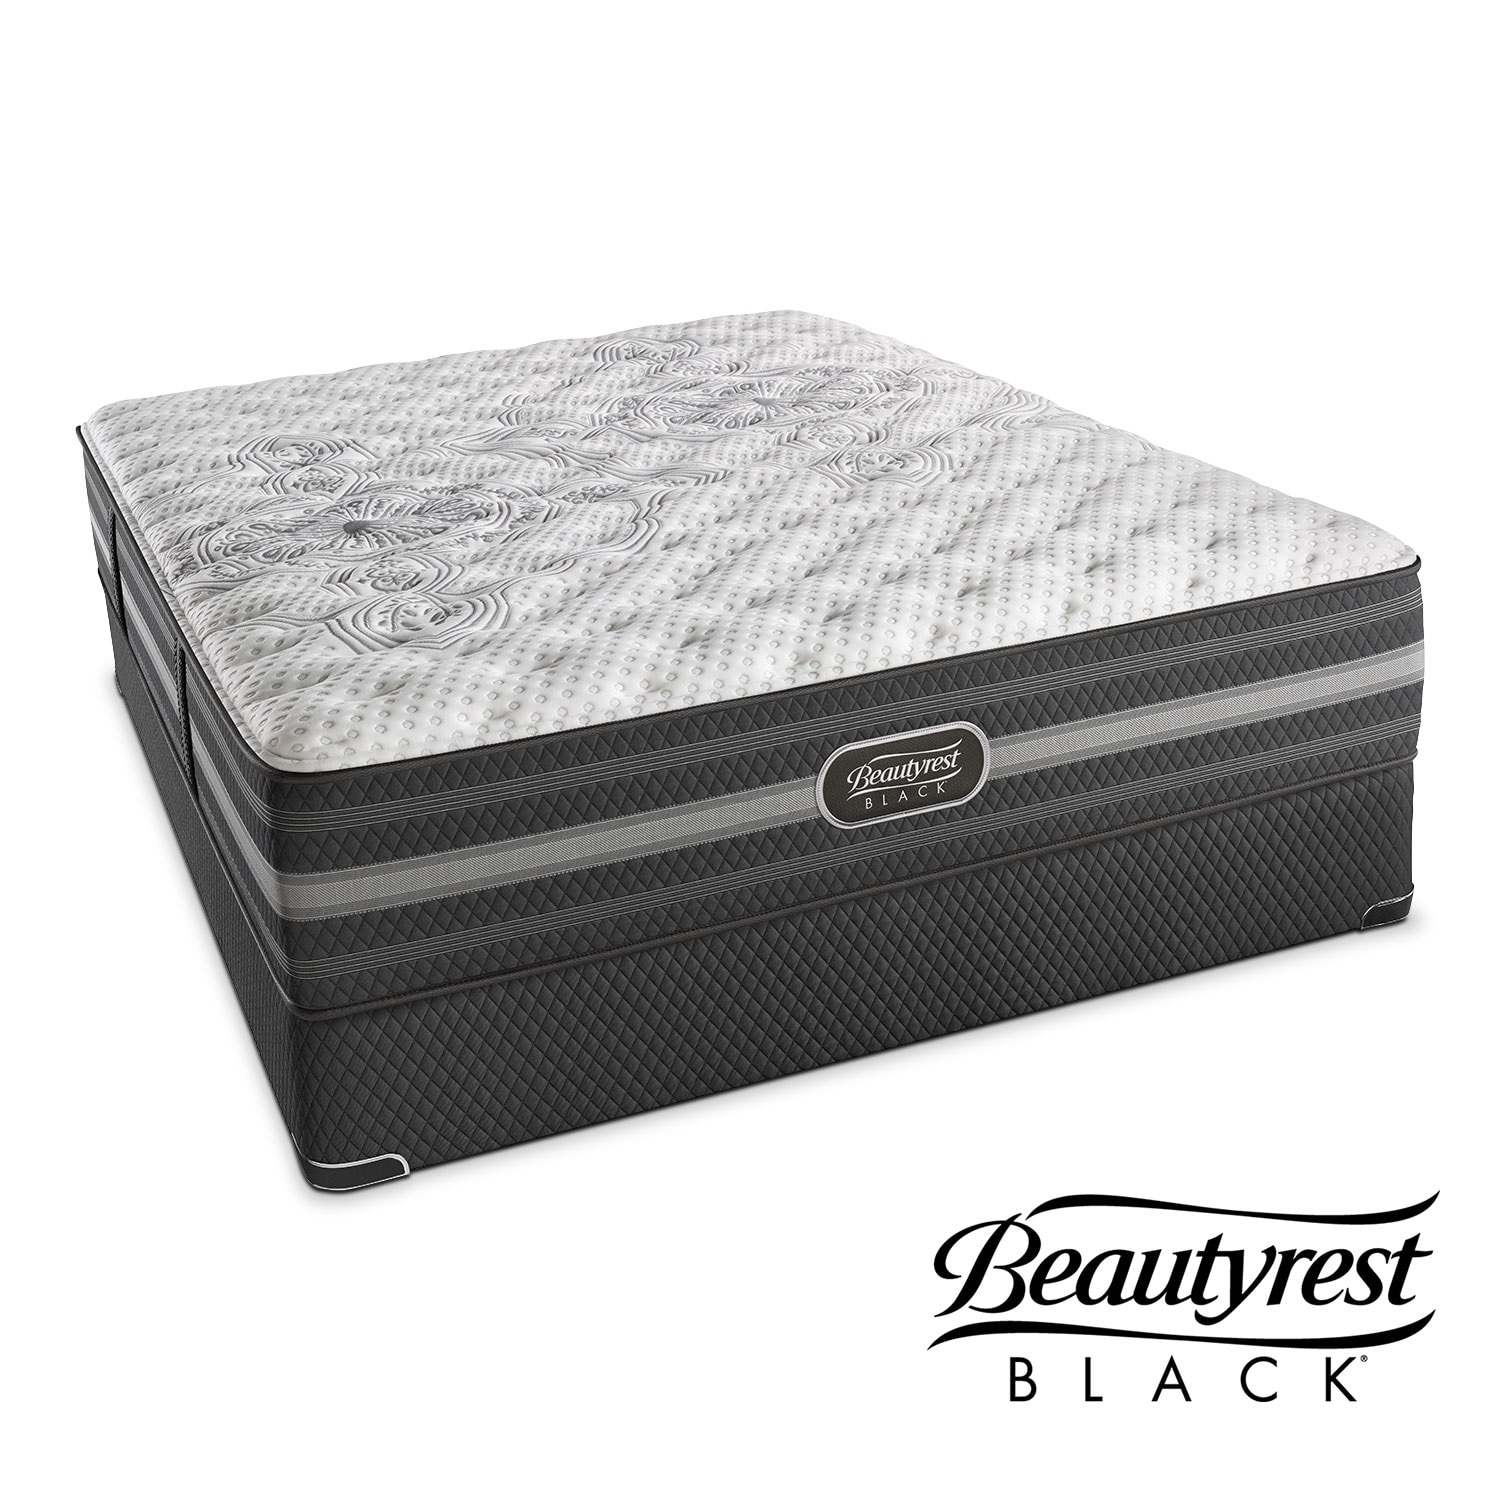 Mattresses and Bedding - Calista X-Firm Full Mattress/Foundation Set